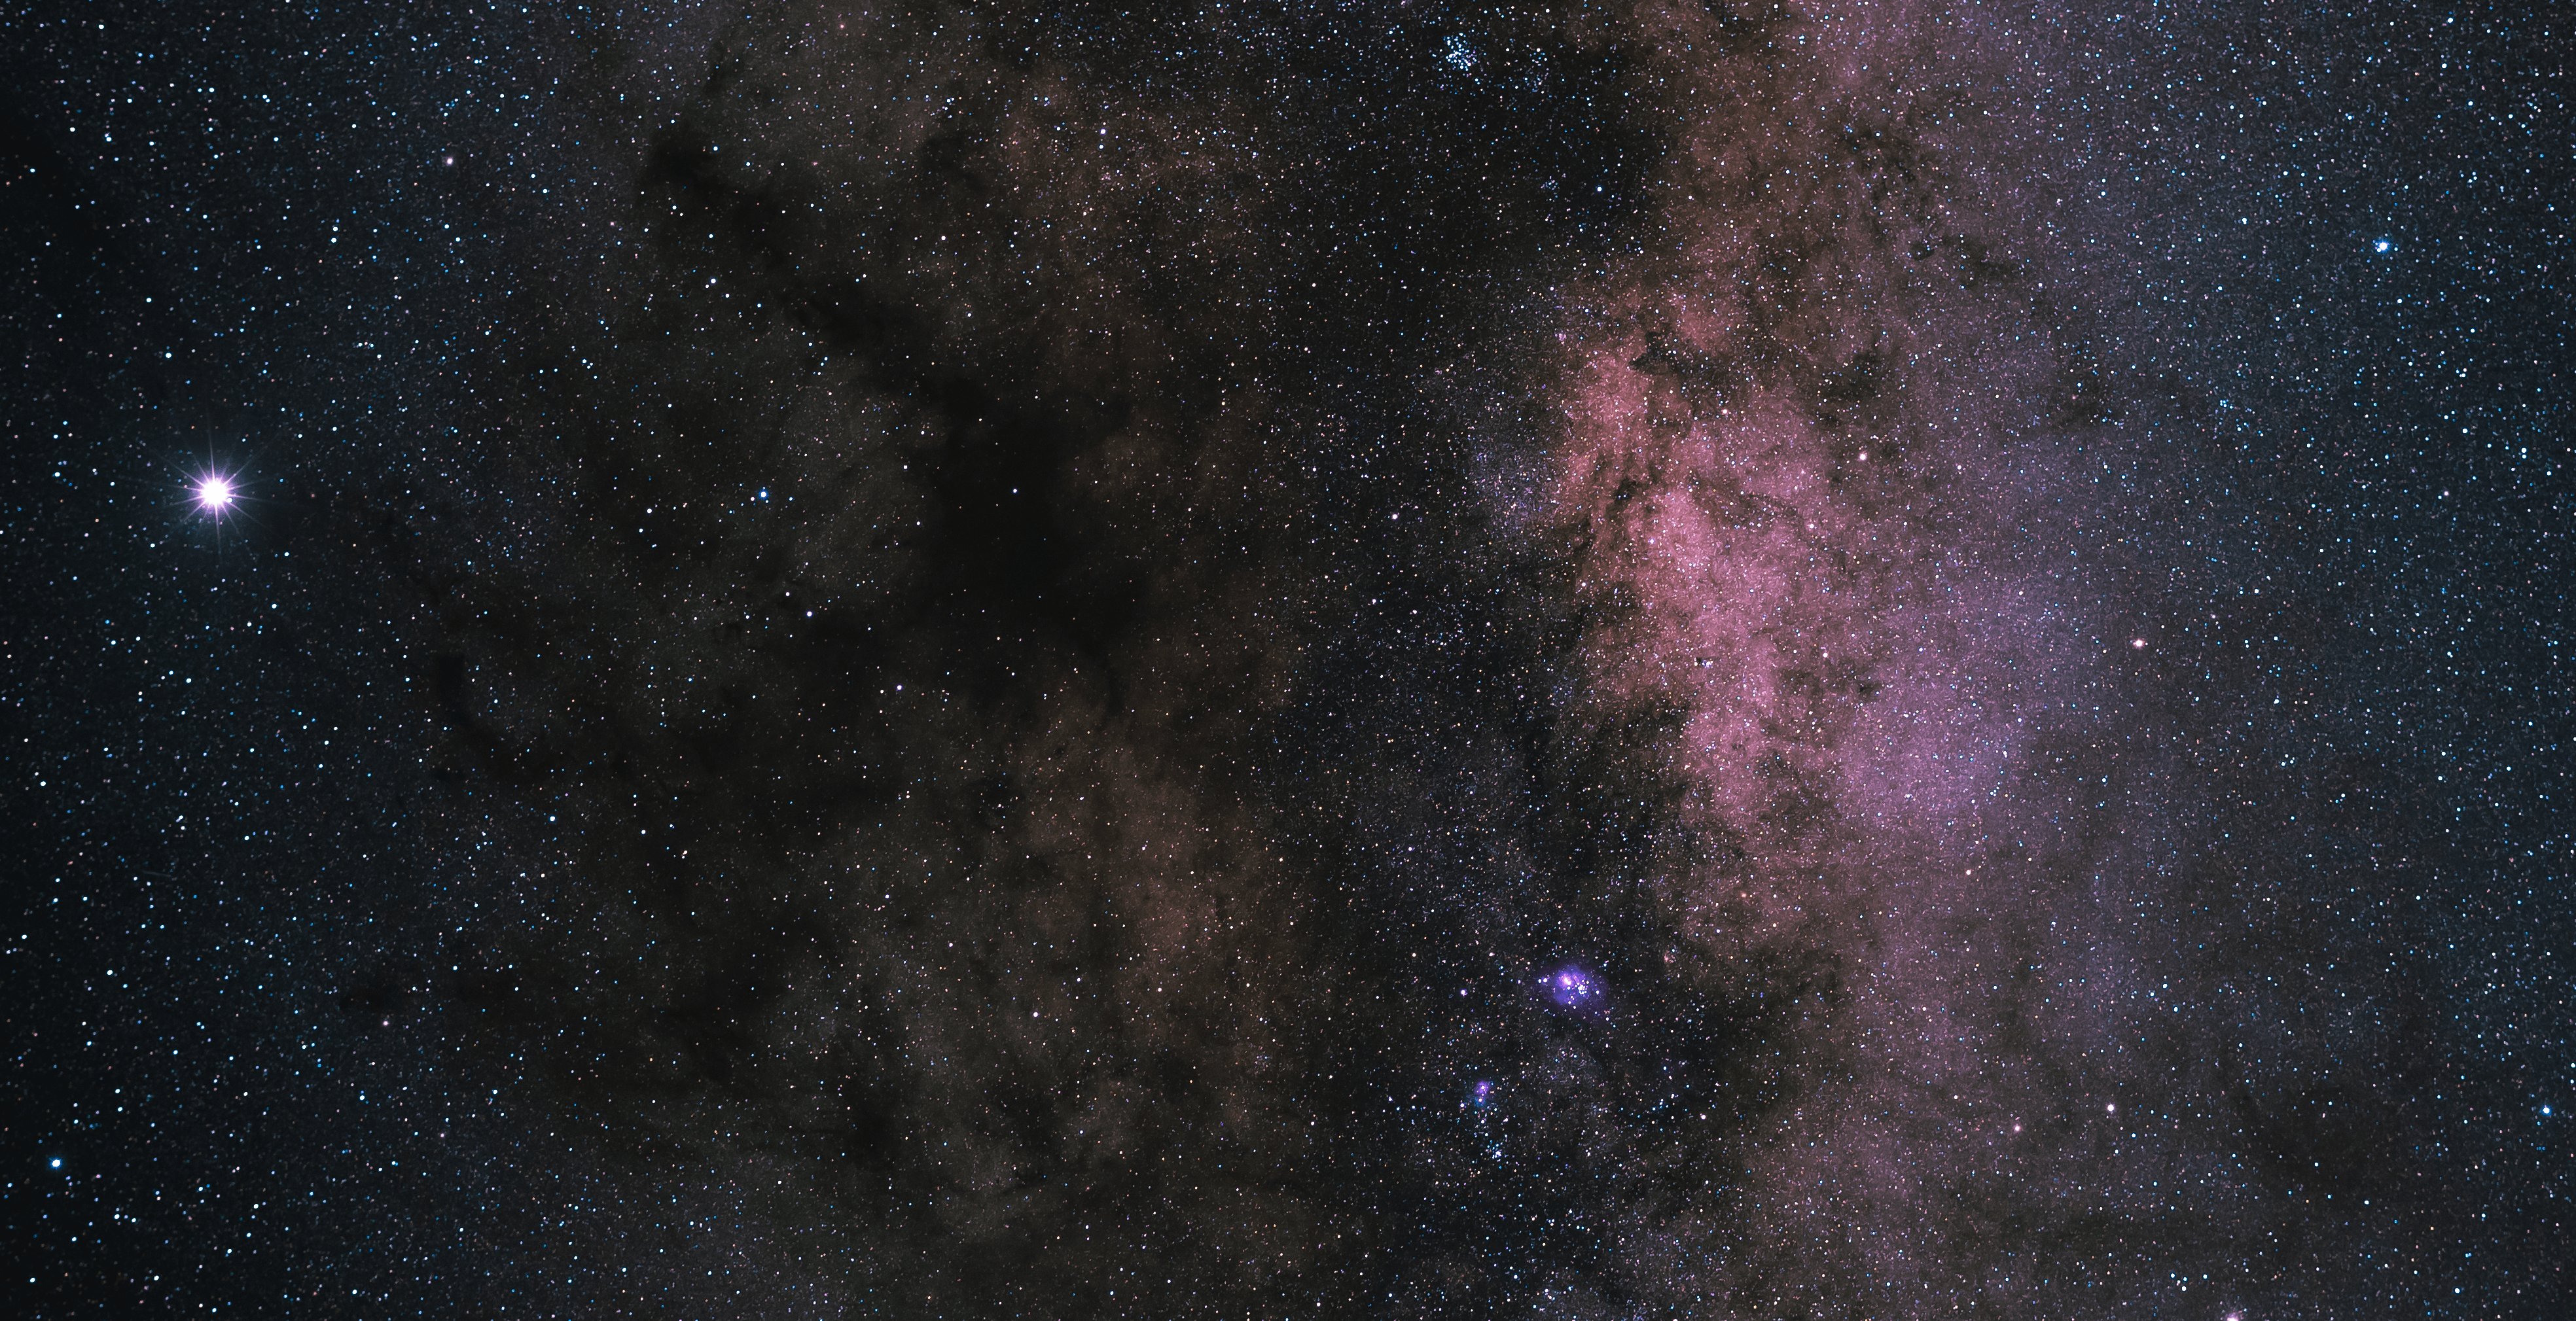 stars-and-milky-way-in-the-night-sky